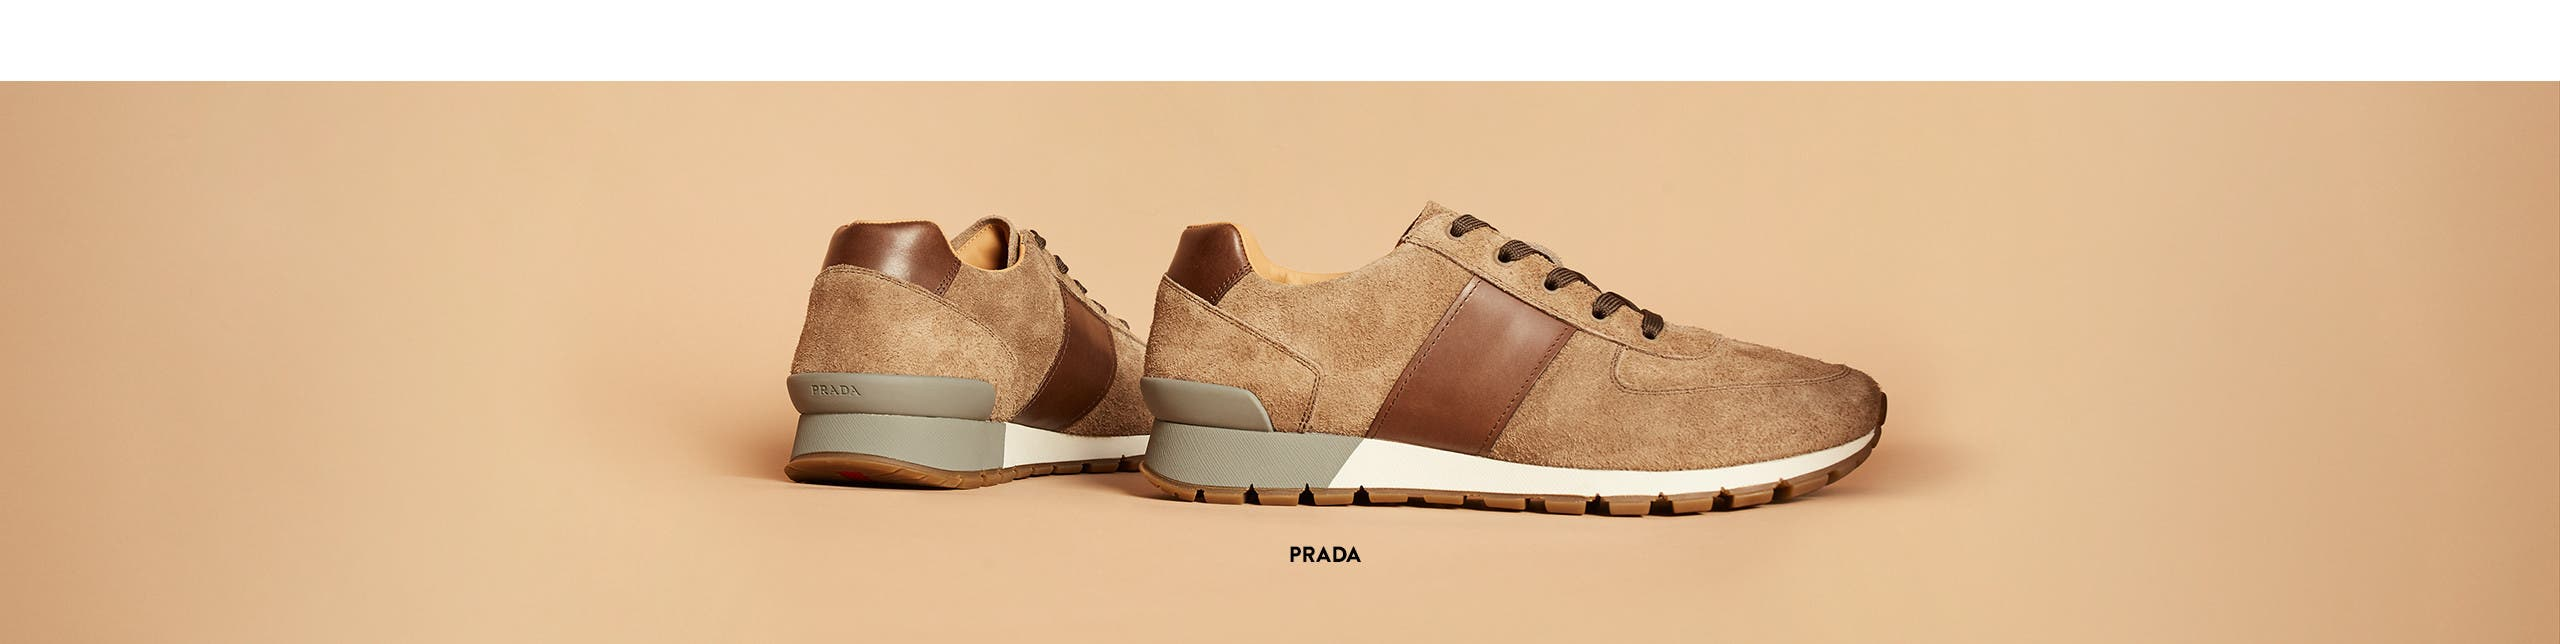 Prada shoes for men.